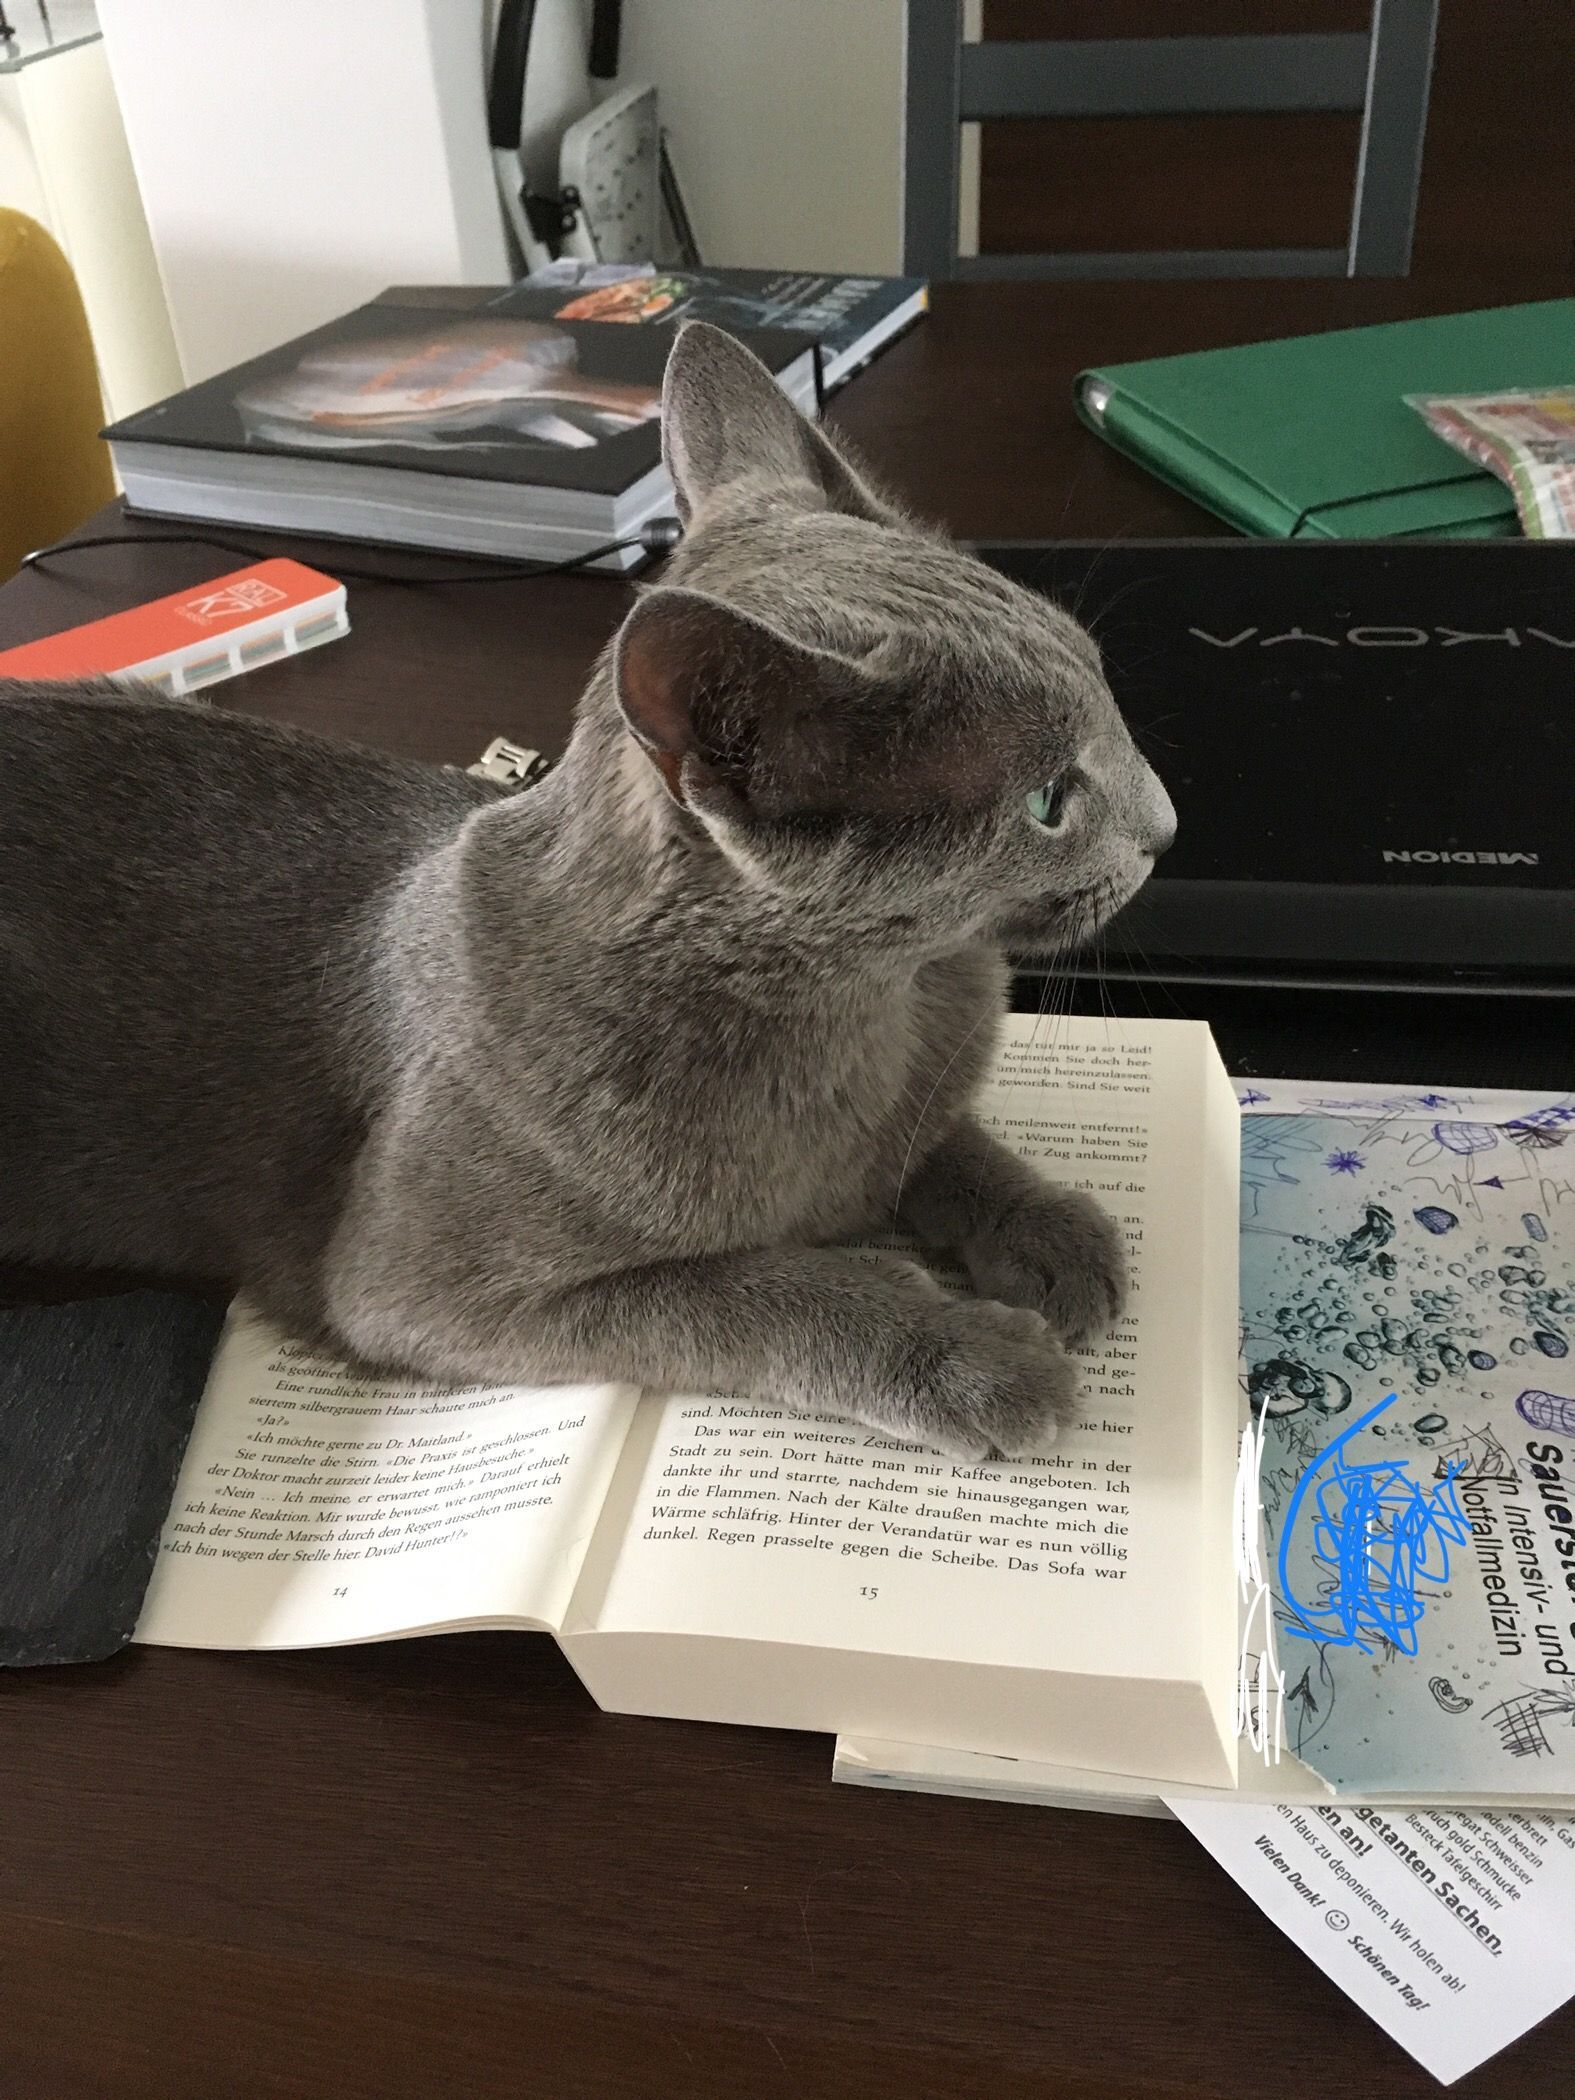 Pin By Geraldine Ashworth On Russian Blue Cats Russian Blue Russian Blue Cat Russian Blue Kitten